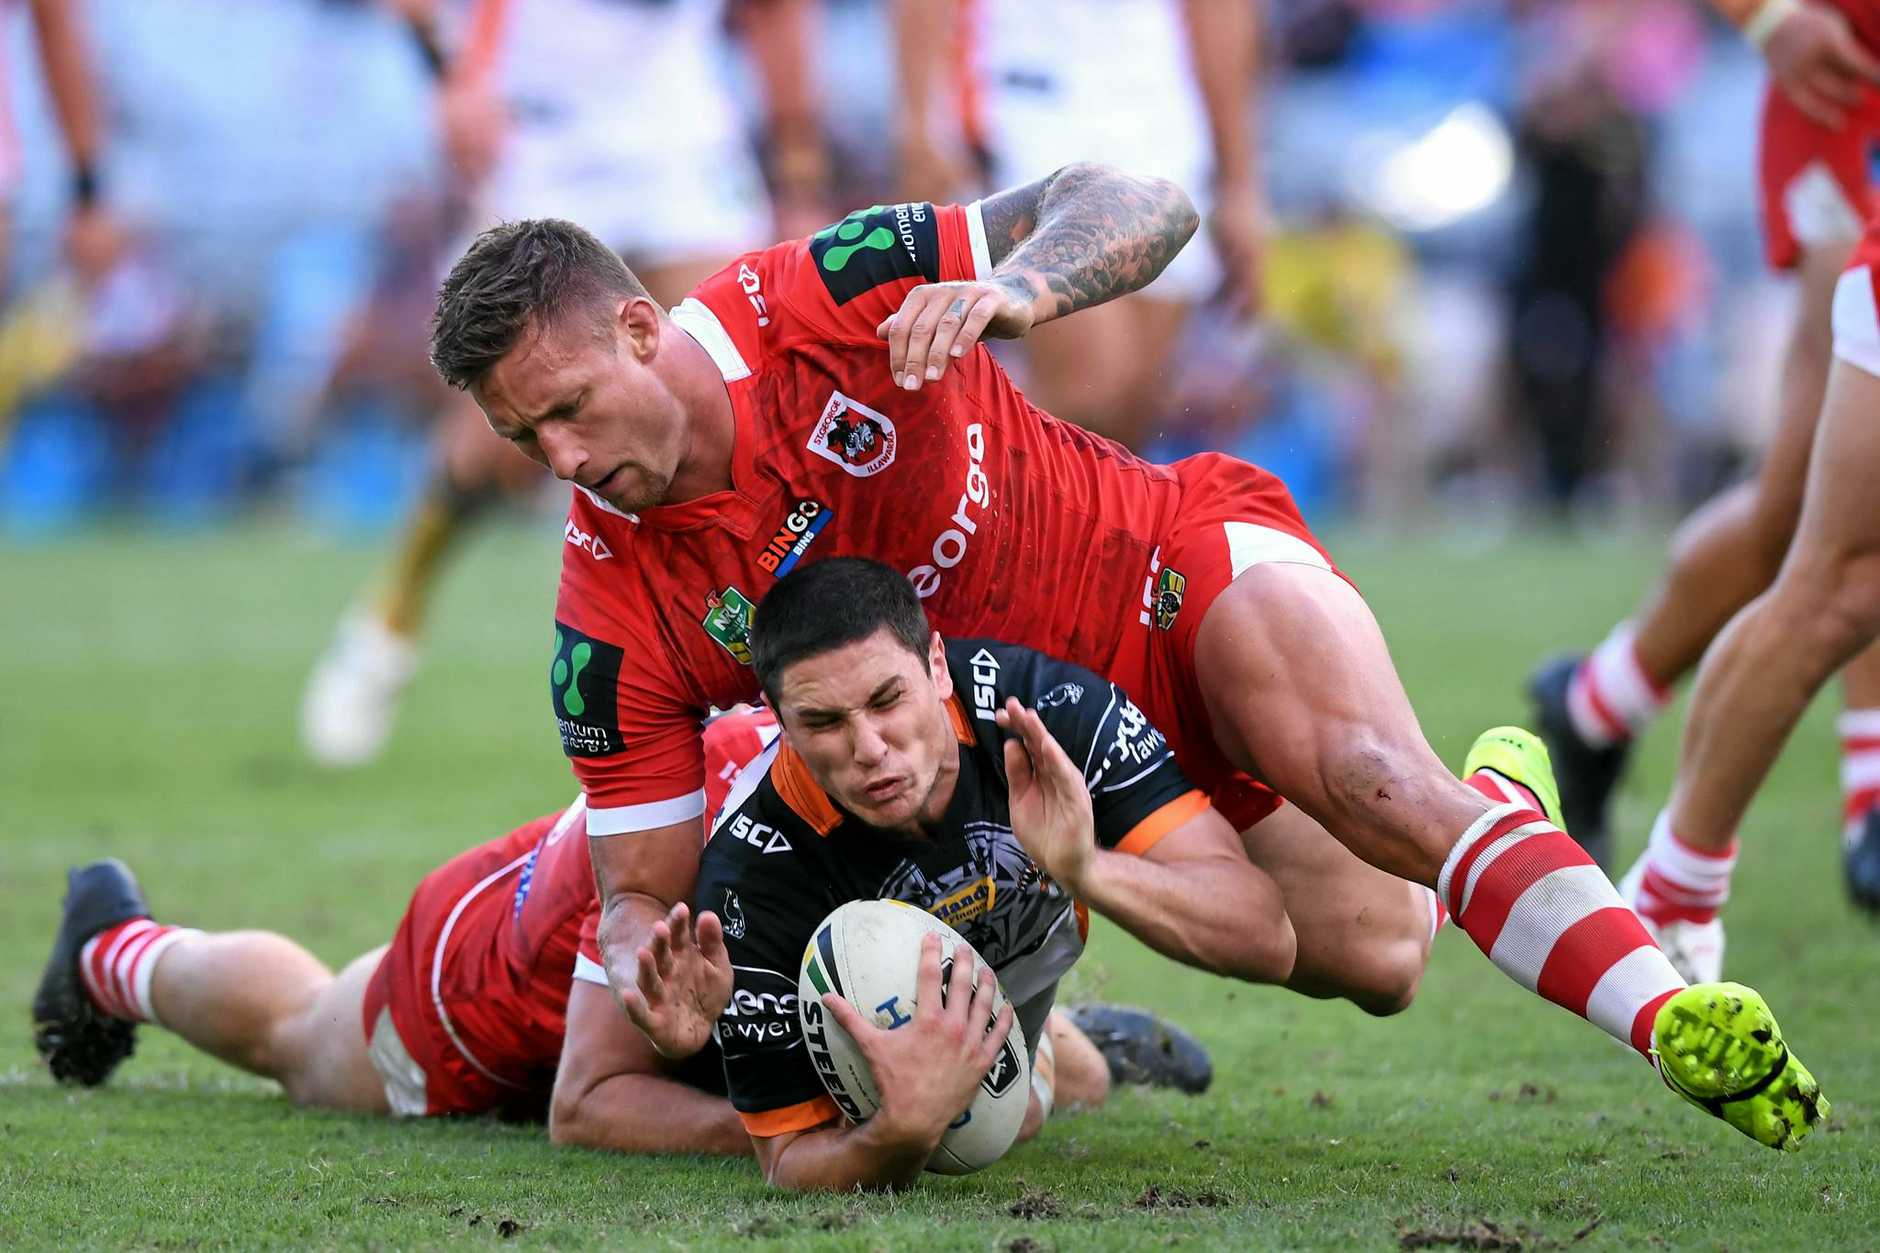 Mitchell Moses (centre) of the Tigers is tackled by Tariq Sims (right) of the Dragons.